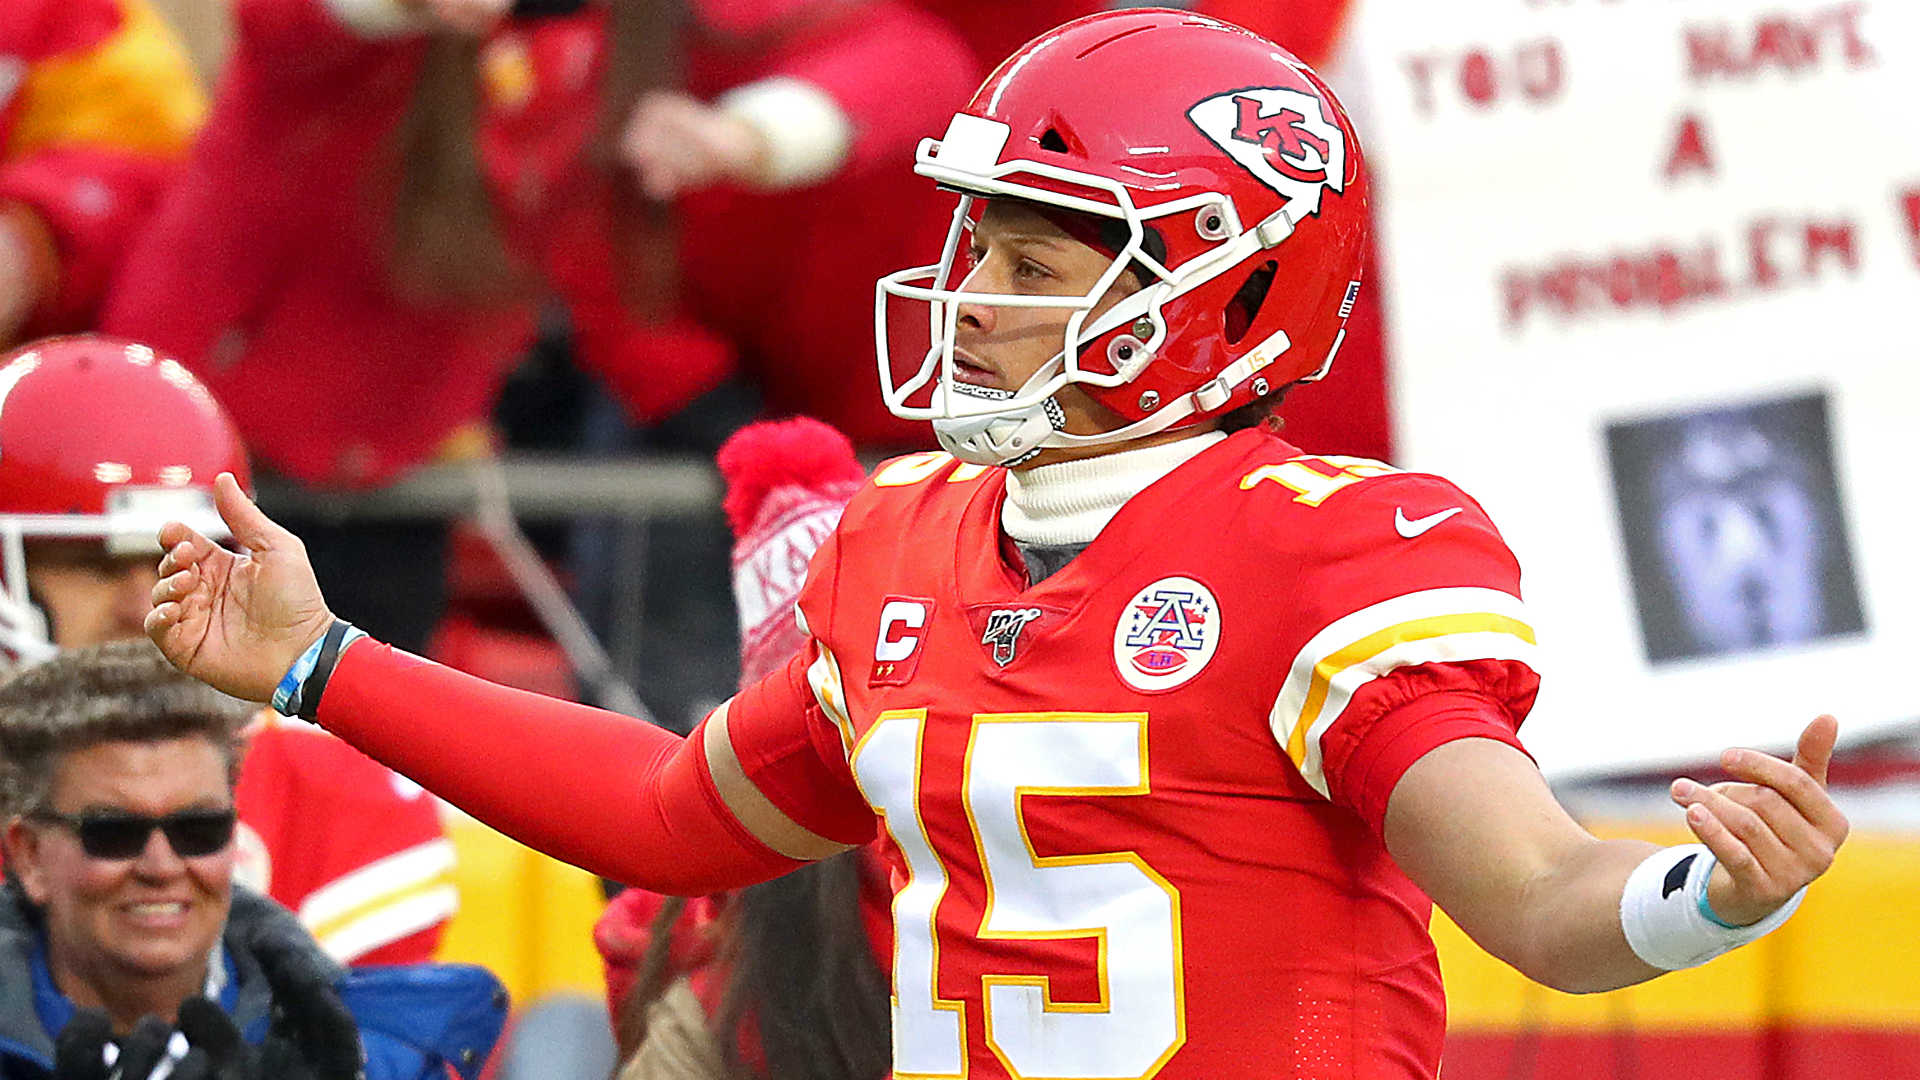 Patrick Mahomes takes notes after coming in fourth again in NFL Top 100 1